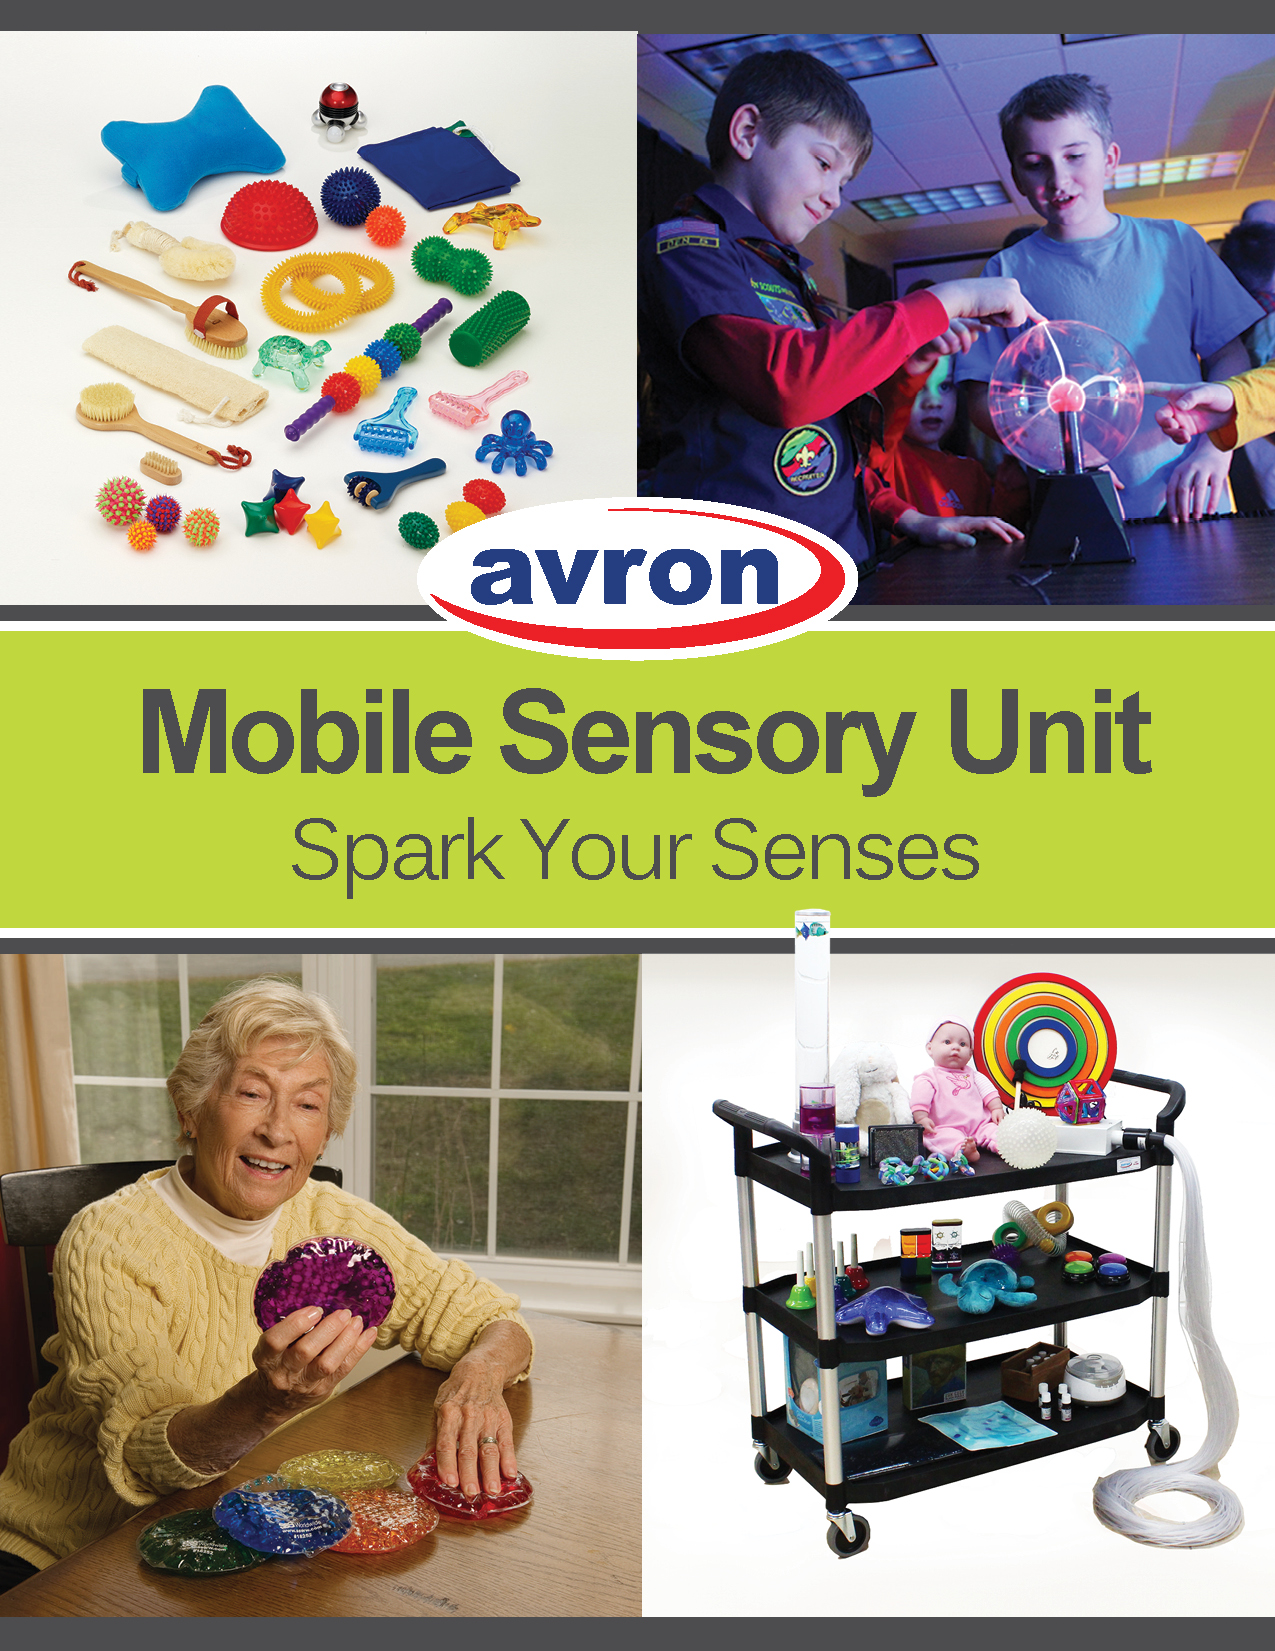 Mobile Sensory Unit Brochure_20150521